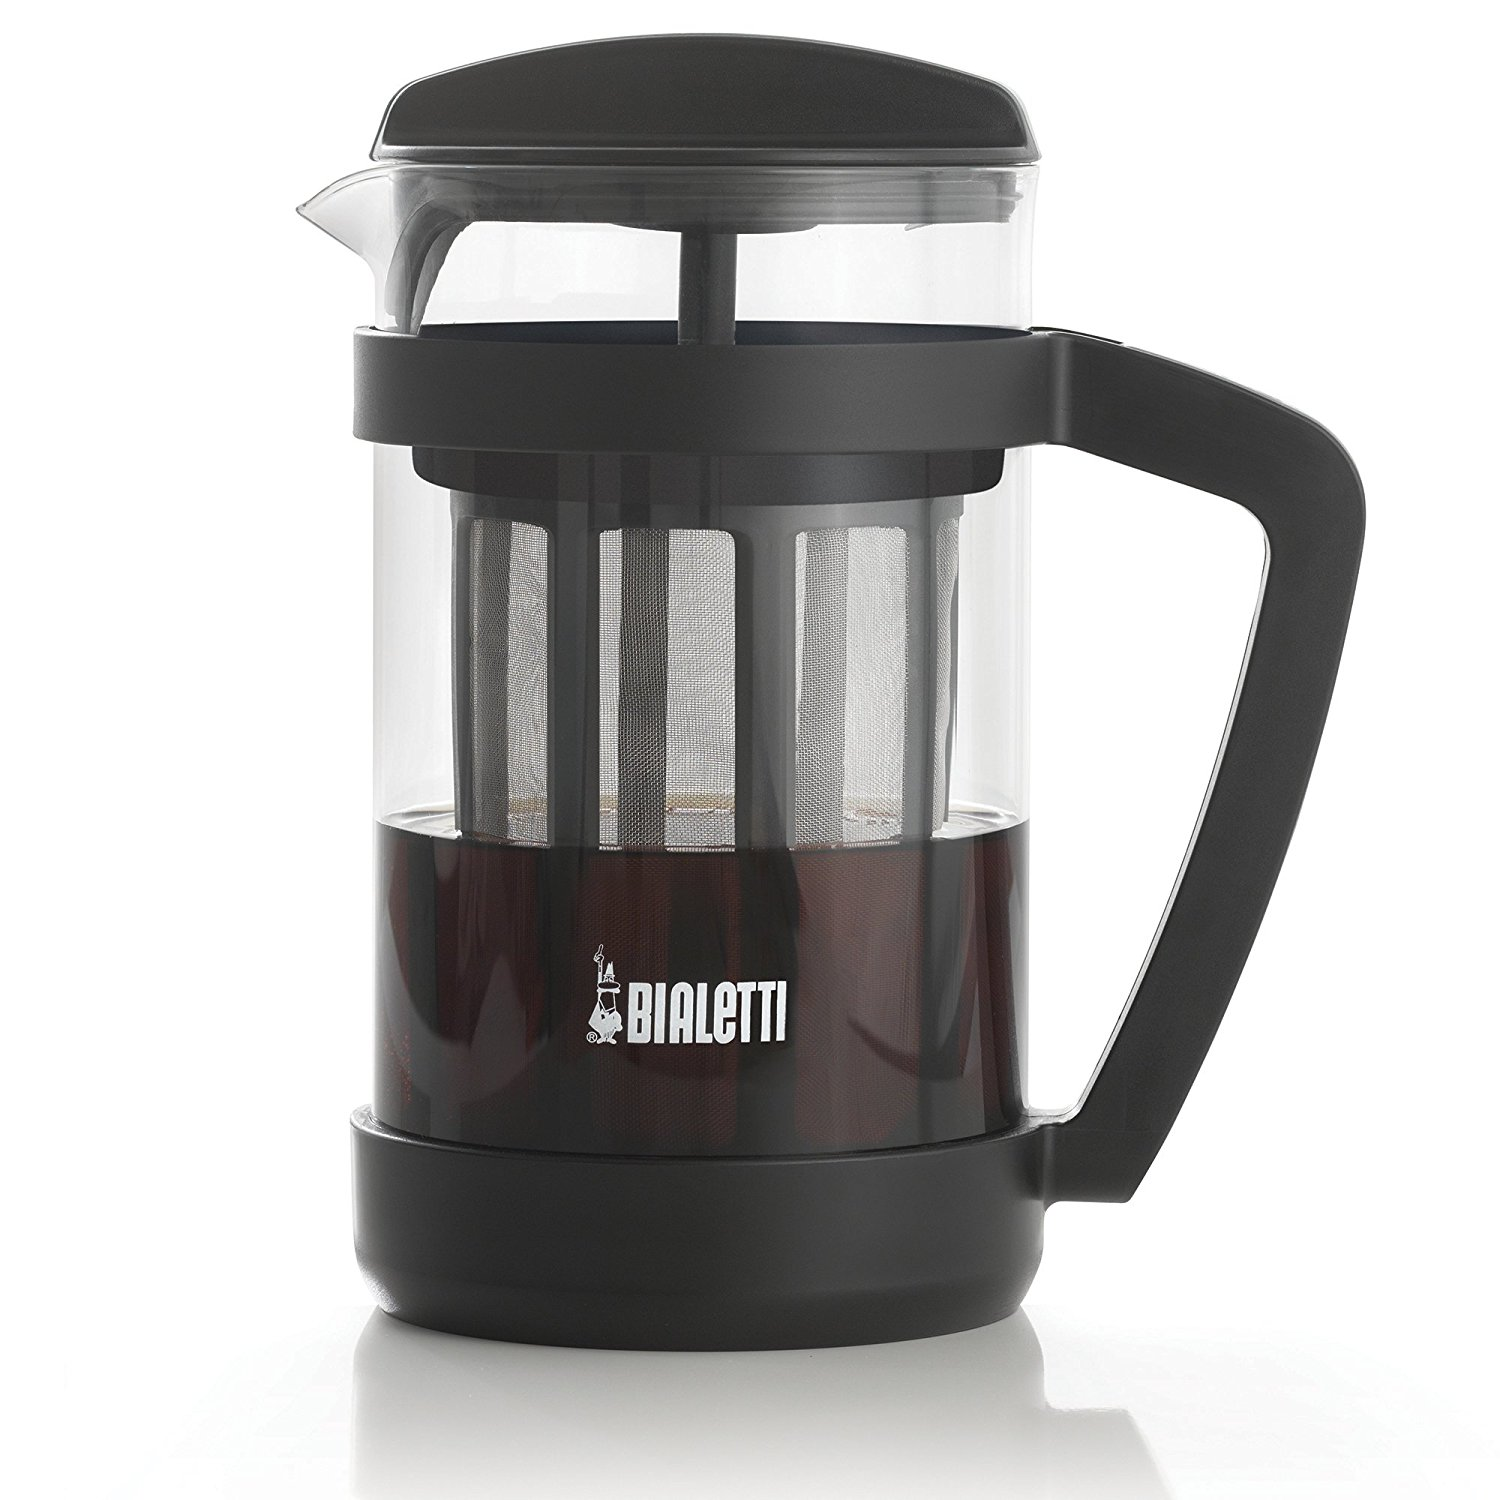 Cheap Grind Brew Coffee Maker Find Grind Brew Coffee Maker Deals On